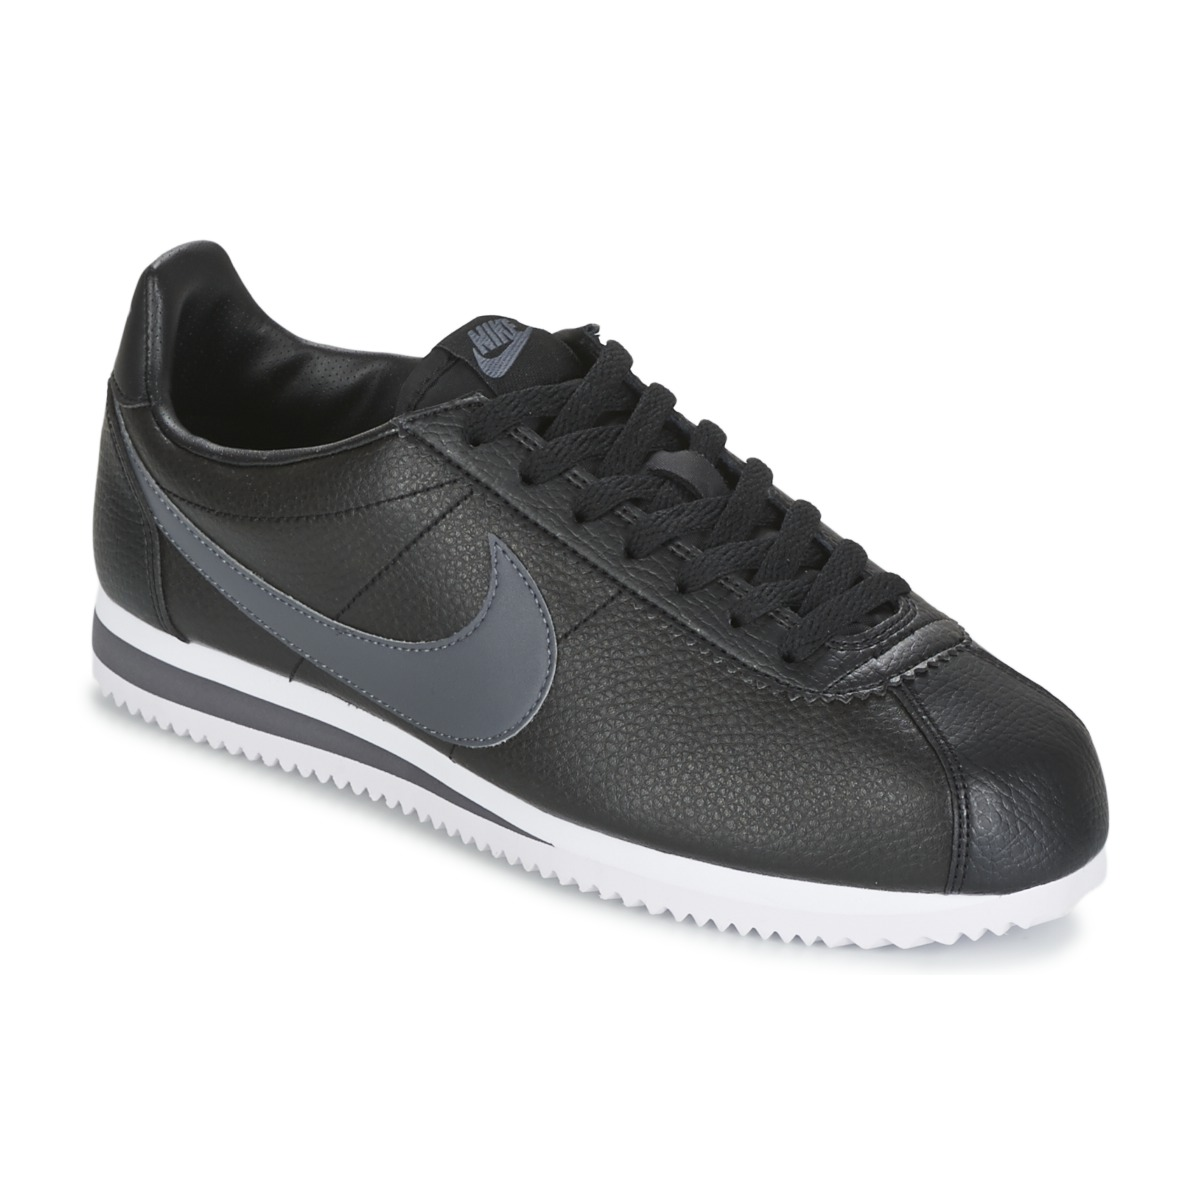 Nike CLASSIC CORTEZ LEATHER Noir / Gris